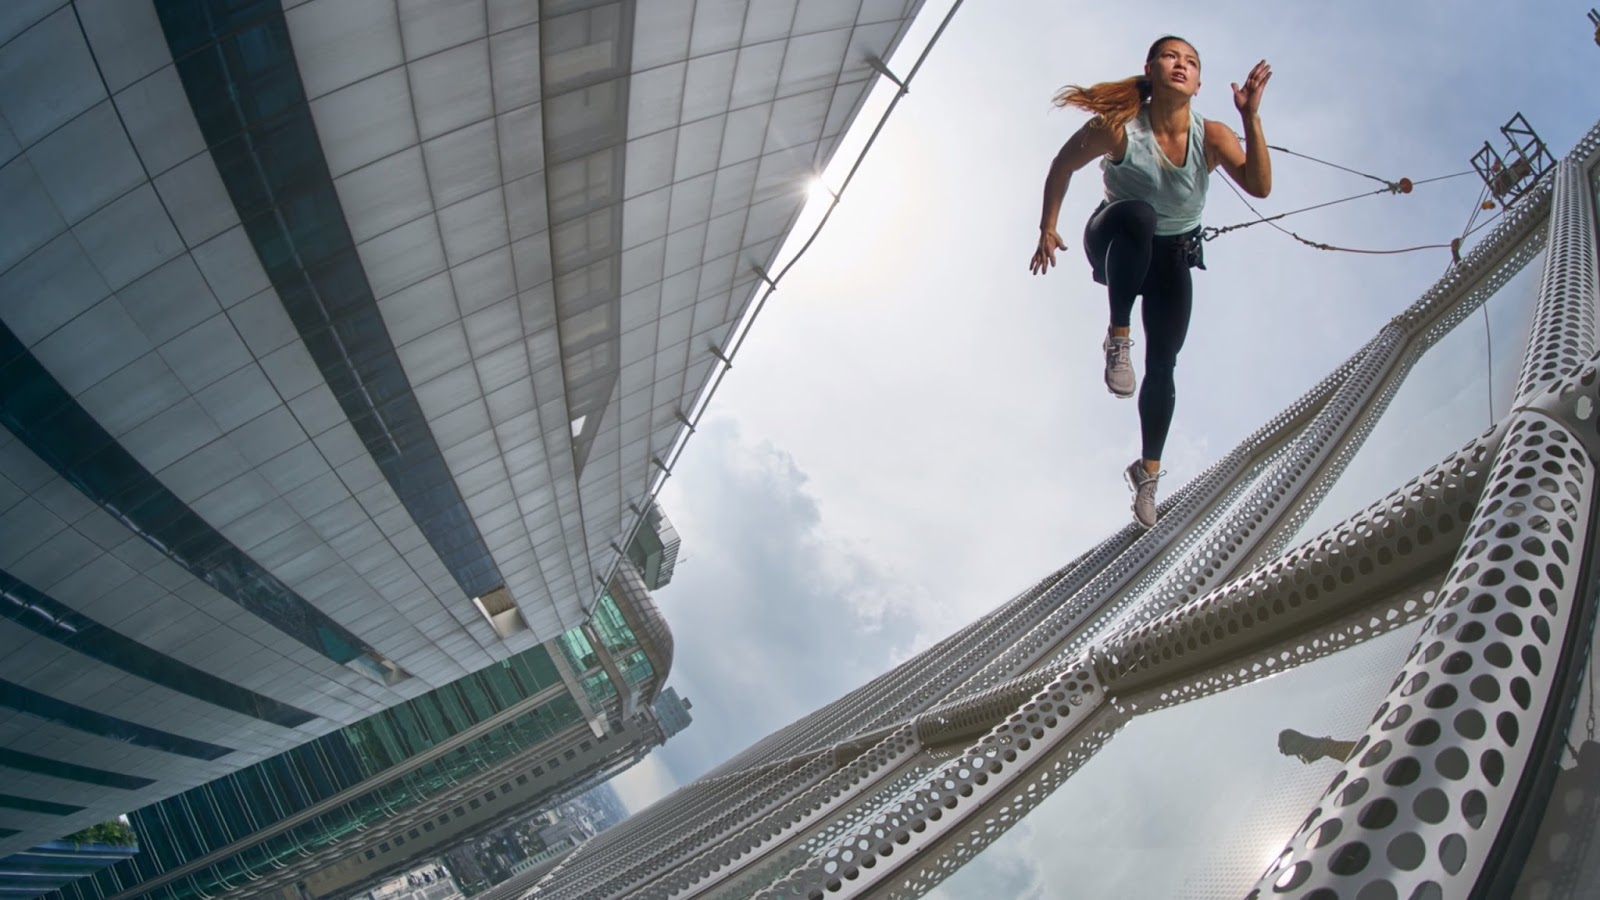 Stunt photoshoot off skyscraper with everyday atheletes